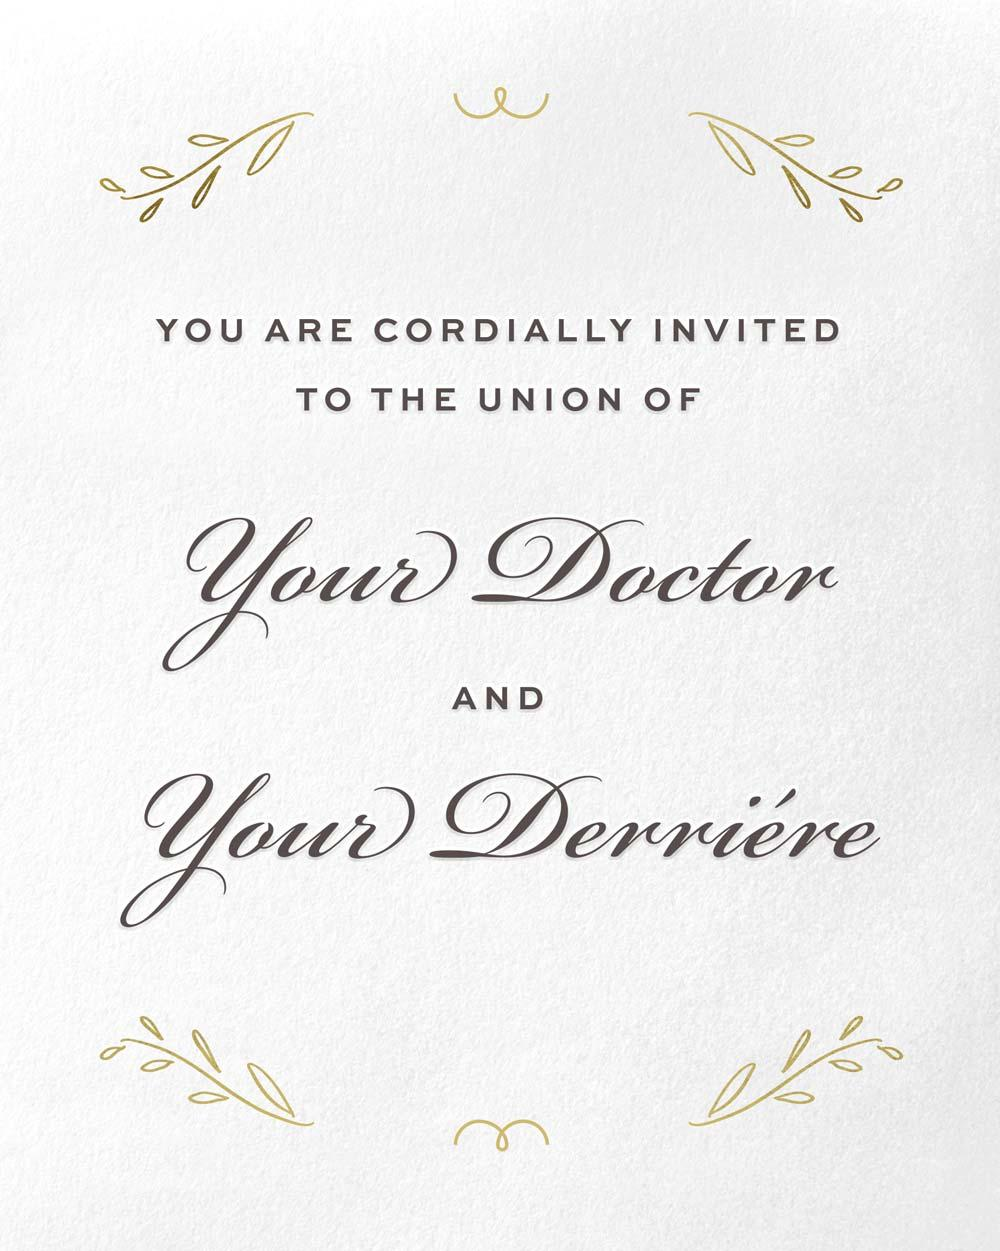 You are cordially invited to the union of Your Doctor and Your Derriére.